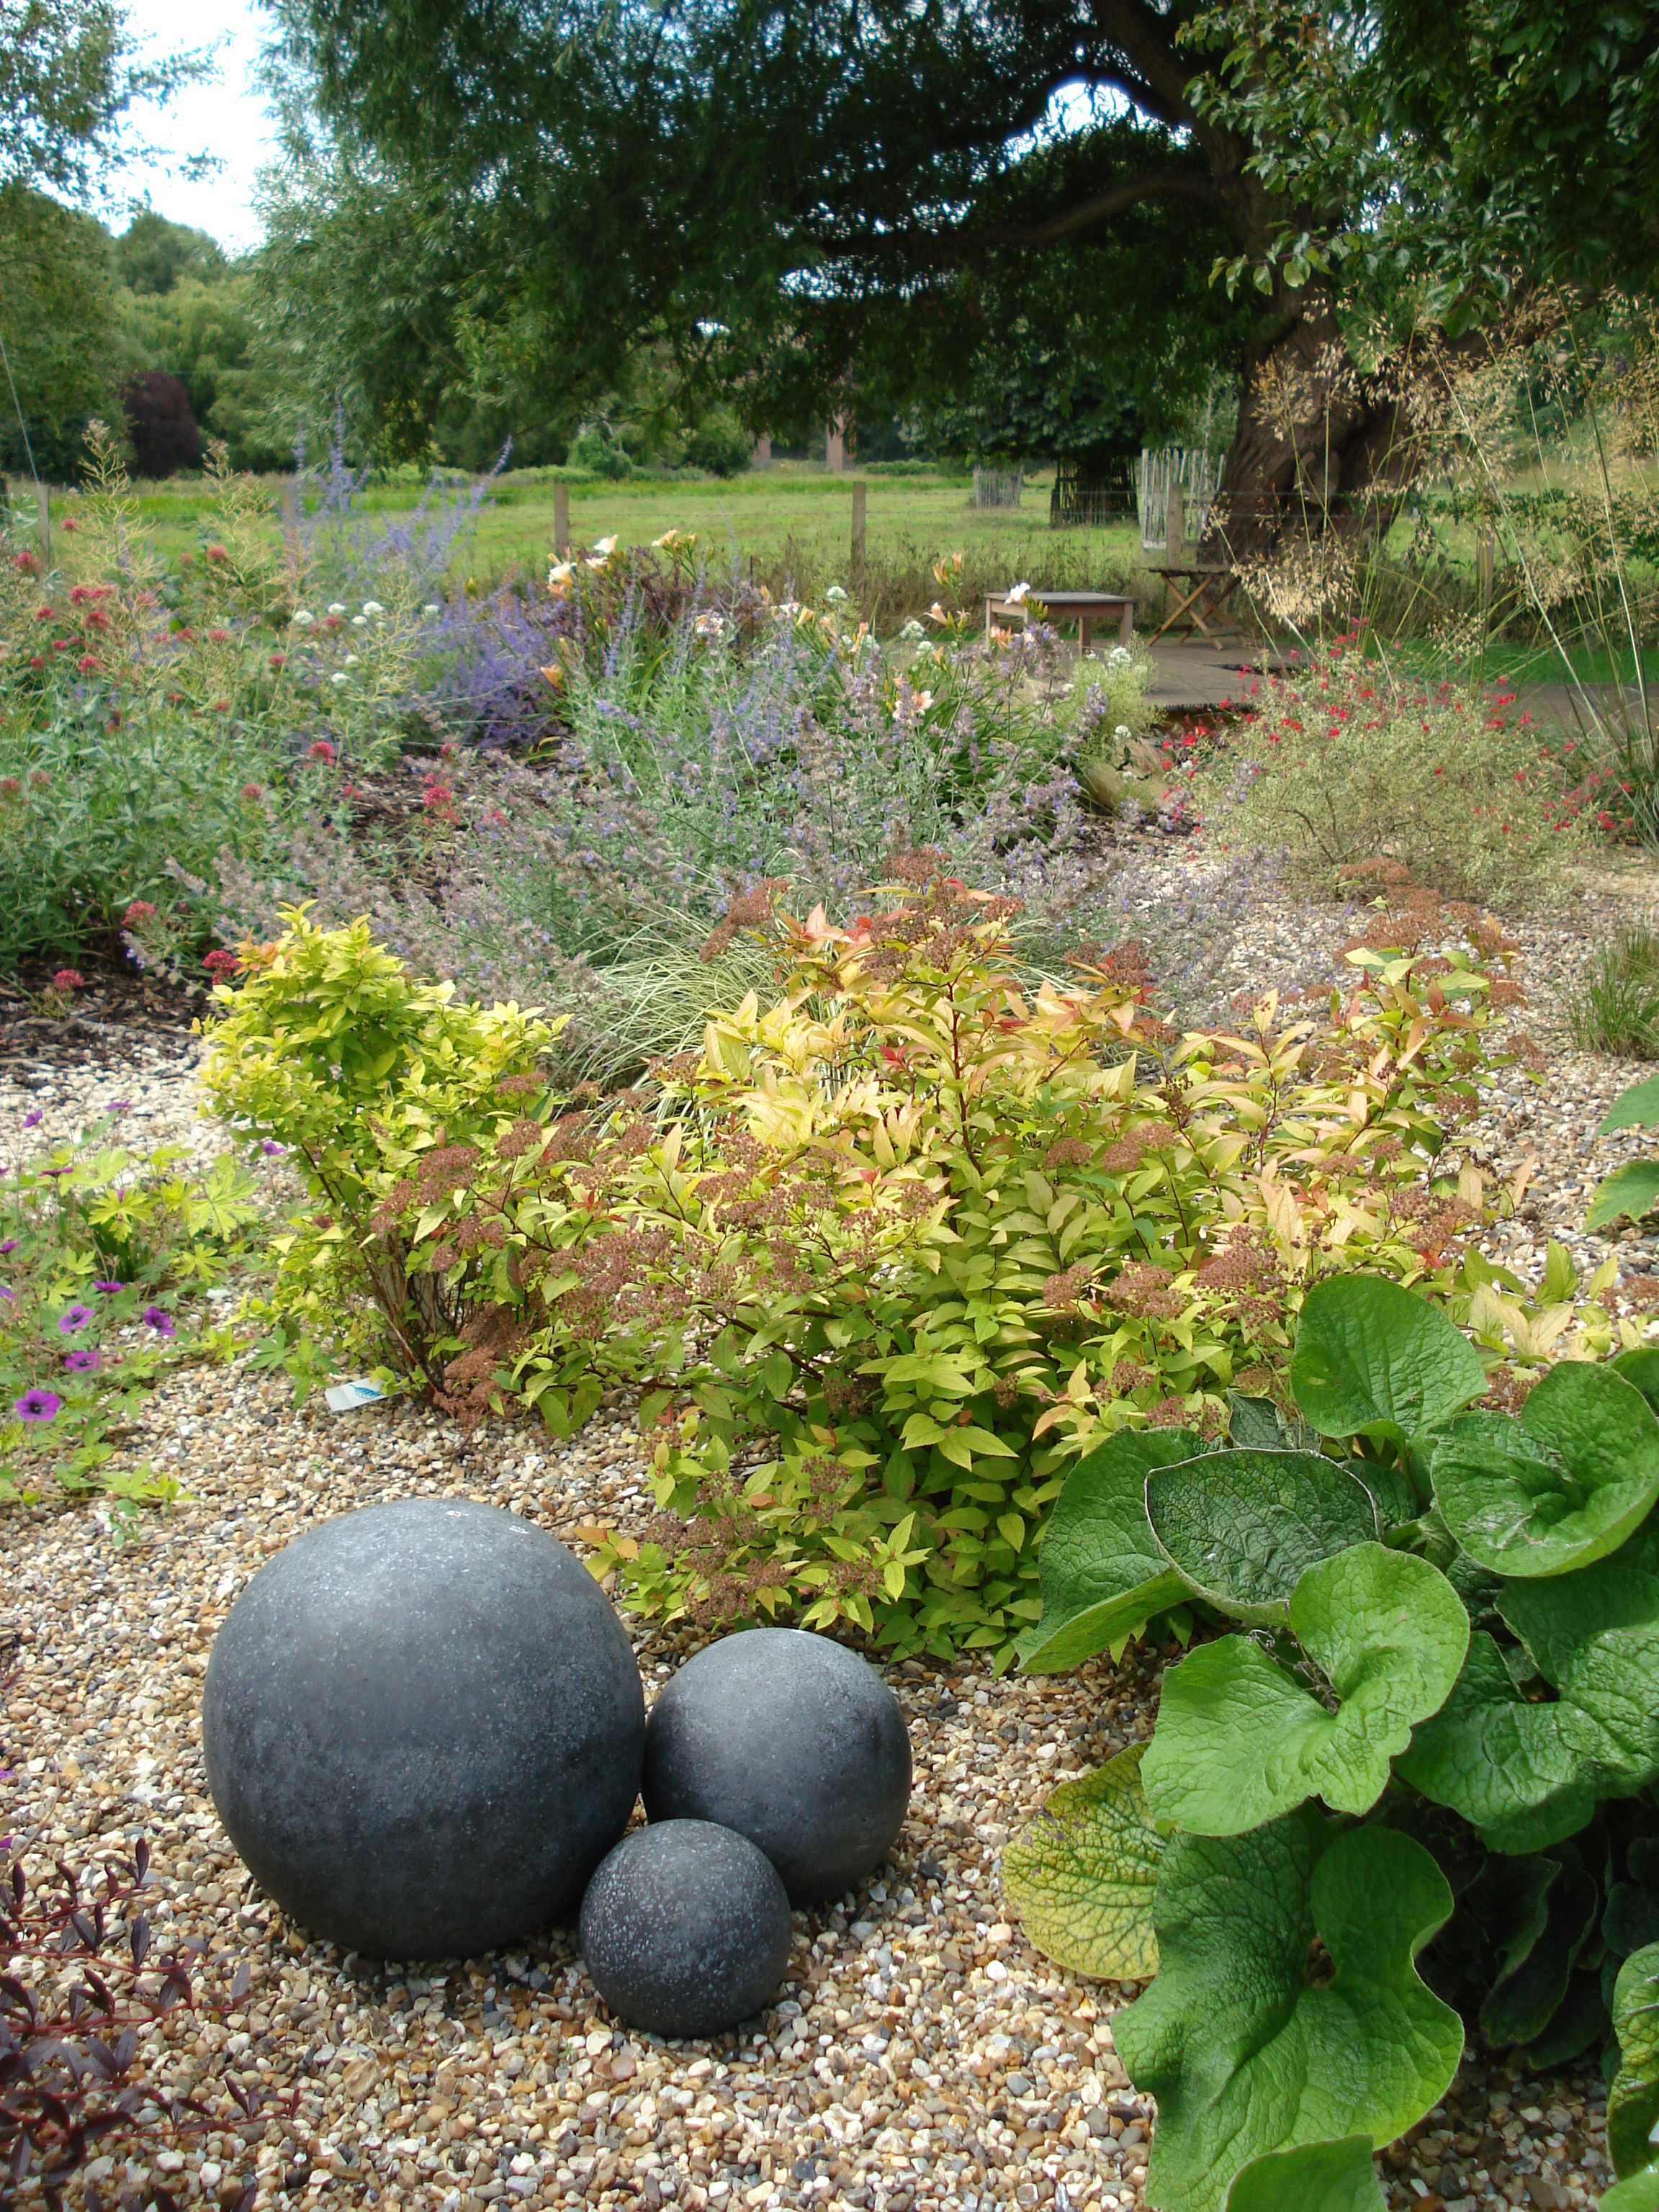 The drought-tolerant dry garden